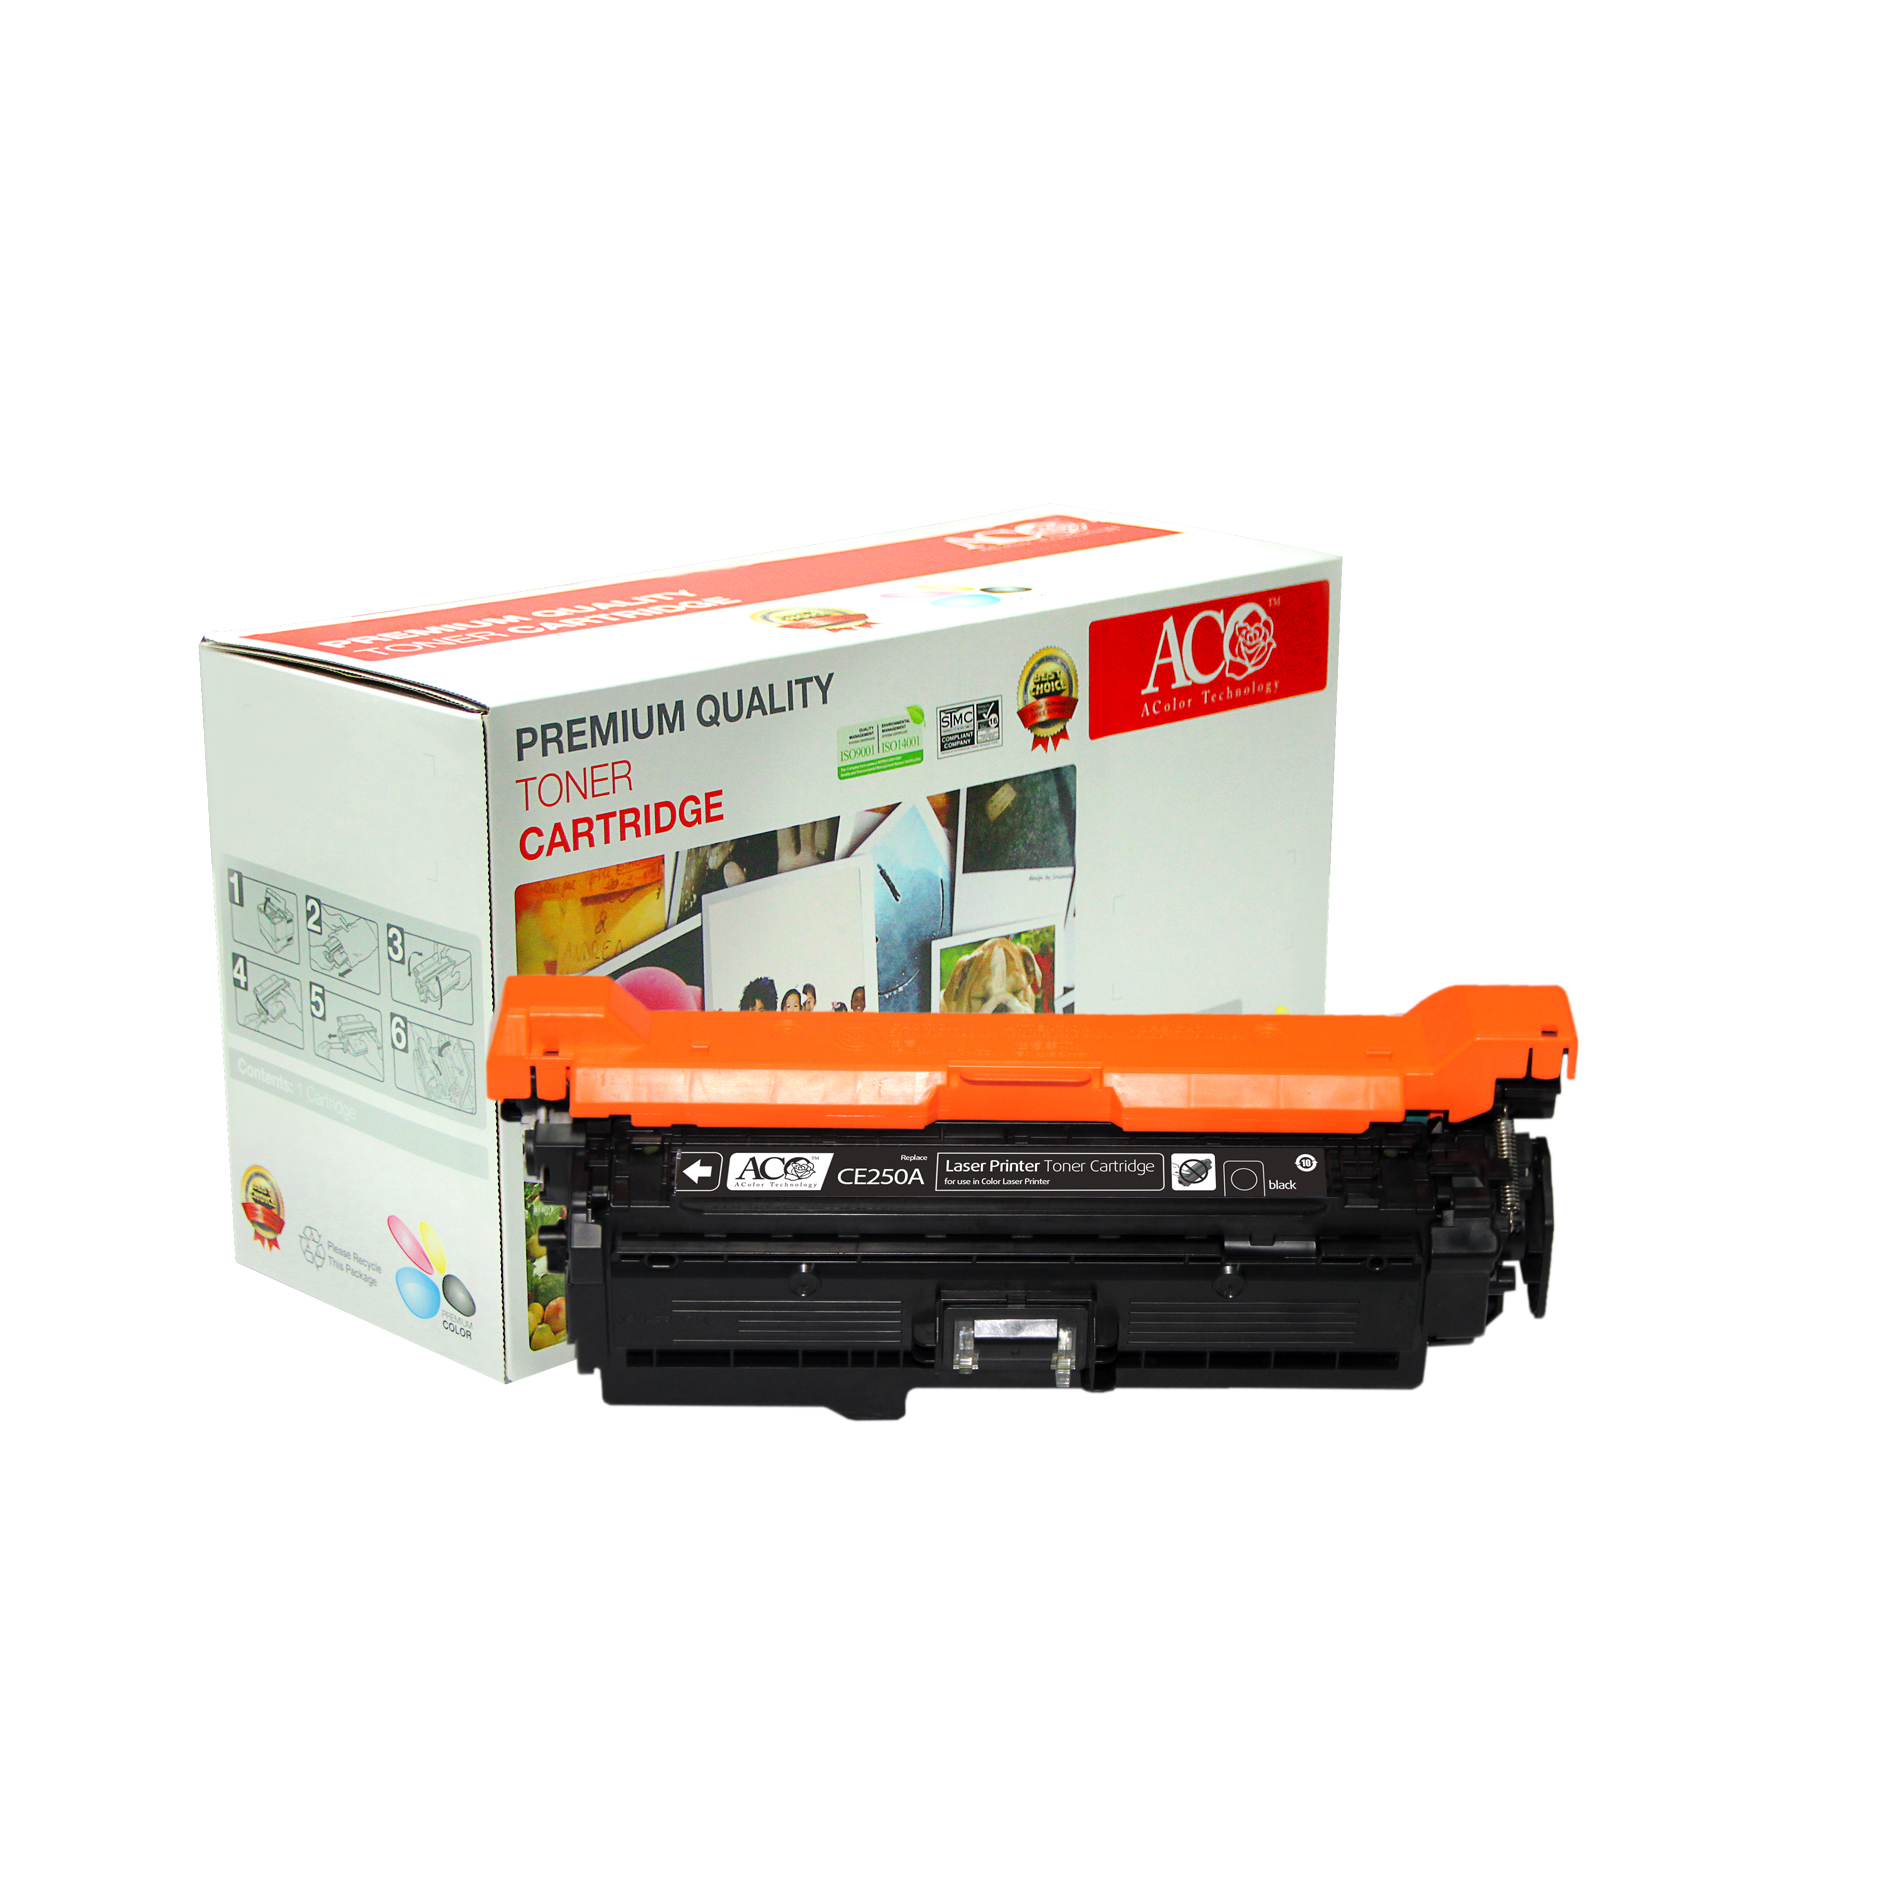 Compatible Color Toner Cartridge for HP CE250A CE251A CE252A CE253A(for HP Color LaserJet CM3530MFP CM3530fsMFP CP3525 CP3525n CP3525dn CP3525x)